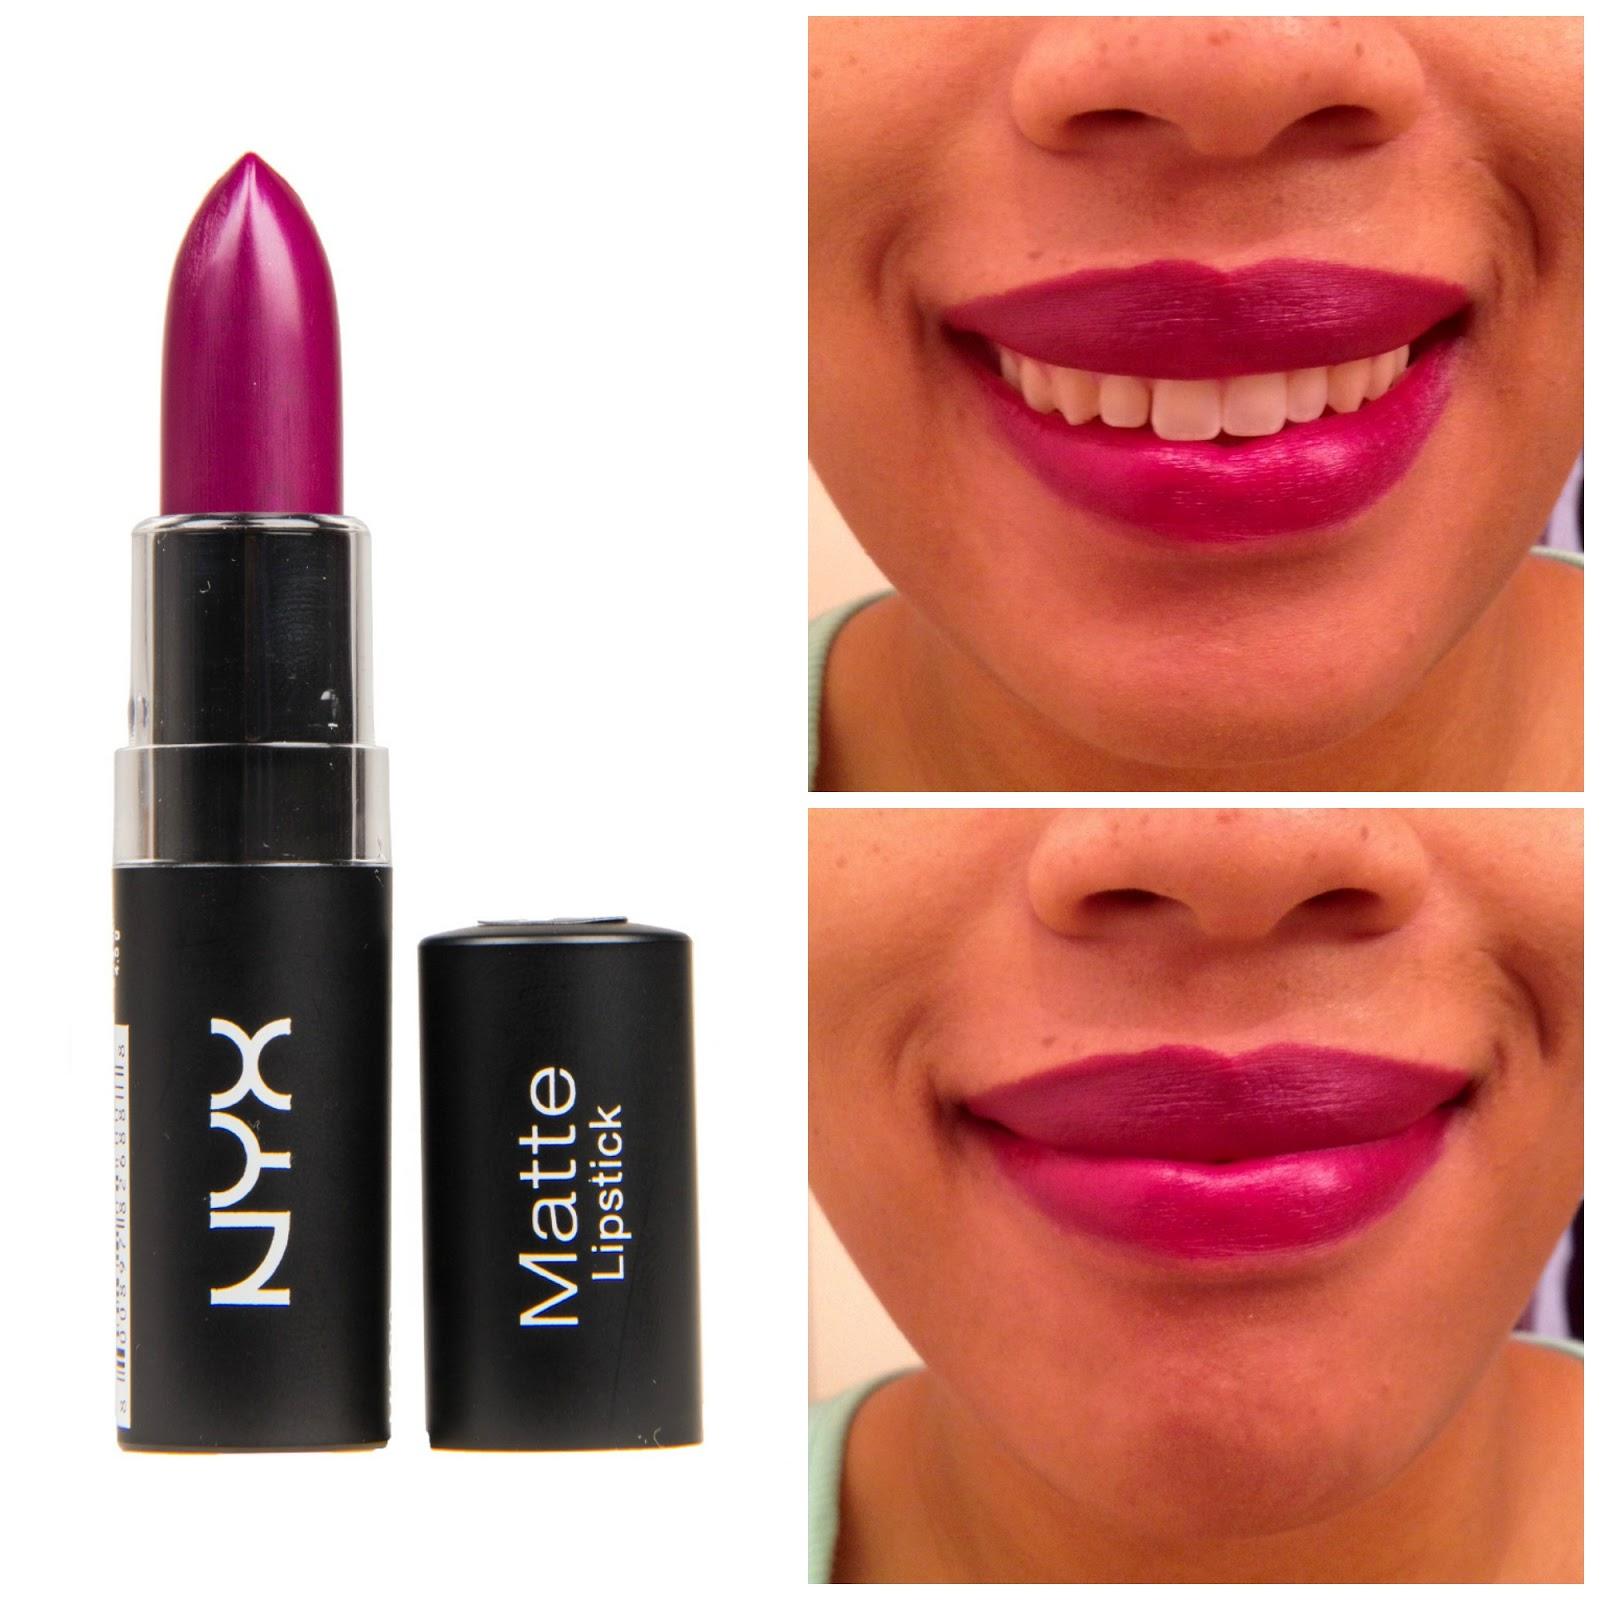 Ladi Like: Lippies for the Low: Fall Lipstick Shades Under $7